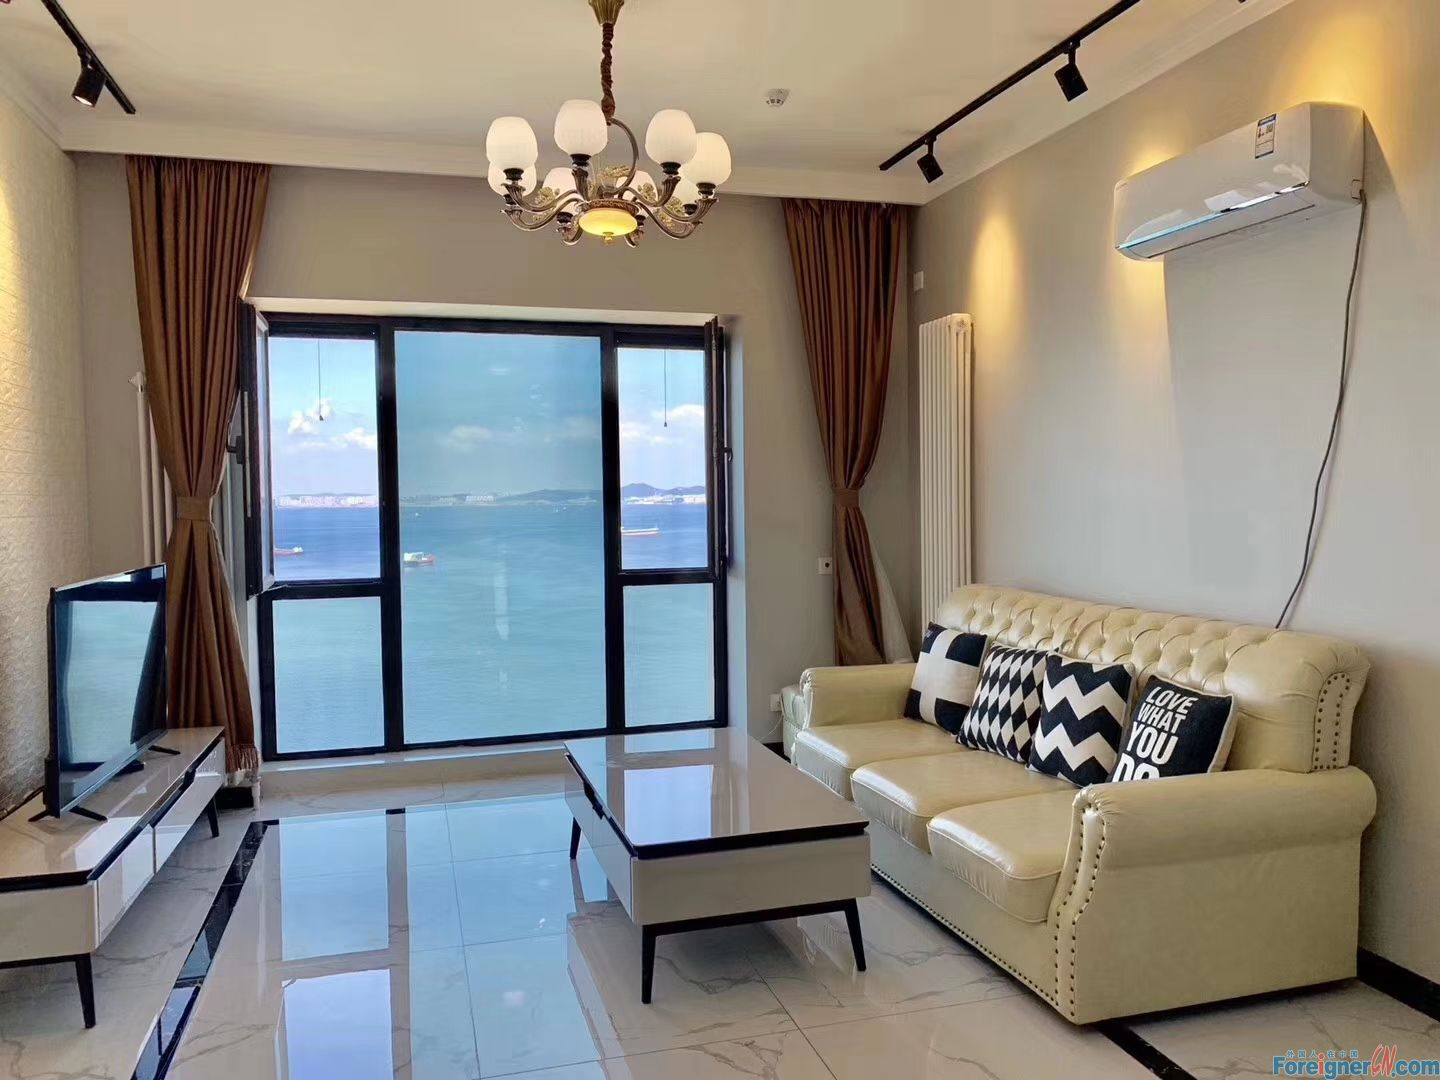 2 bed apartment for rent in Donggang CBD,Zhongshan.